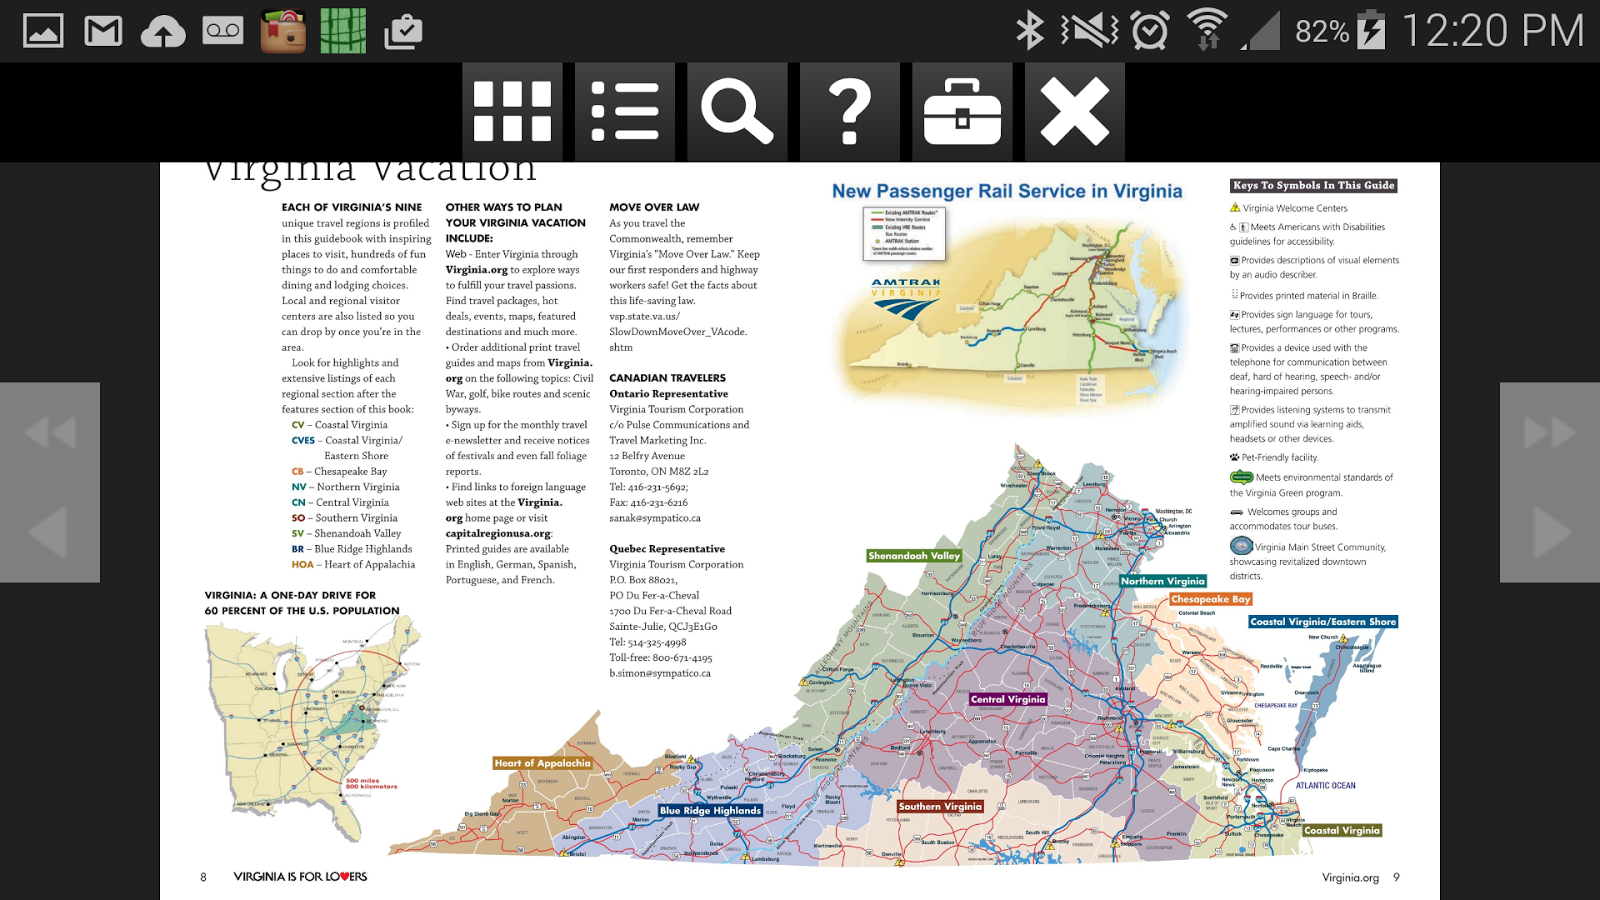 Virginia Travel Guide Android Apps on Google Play – Virginia Travel Map